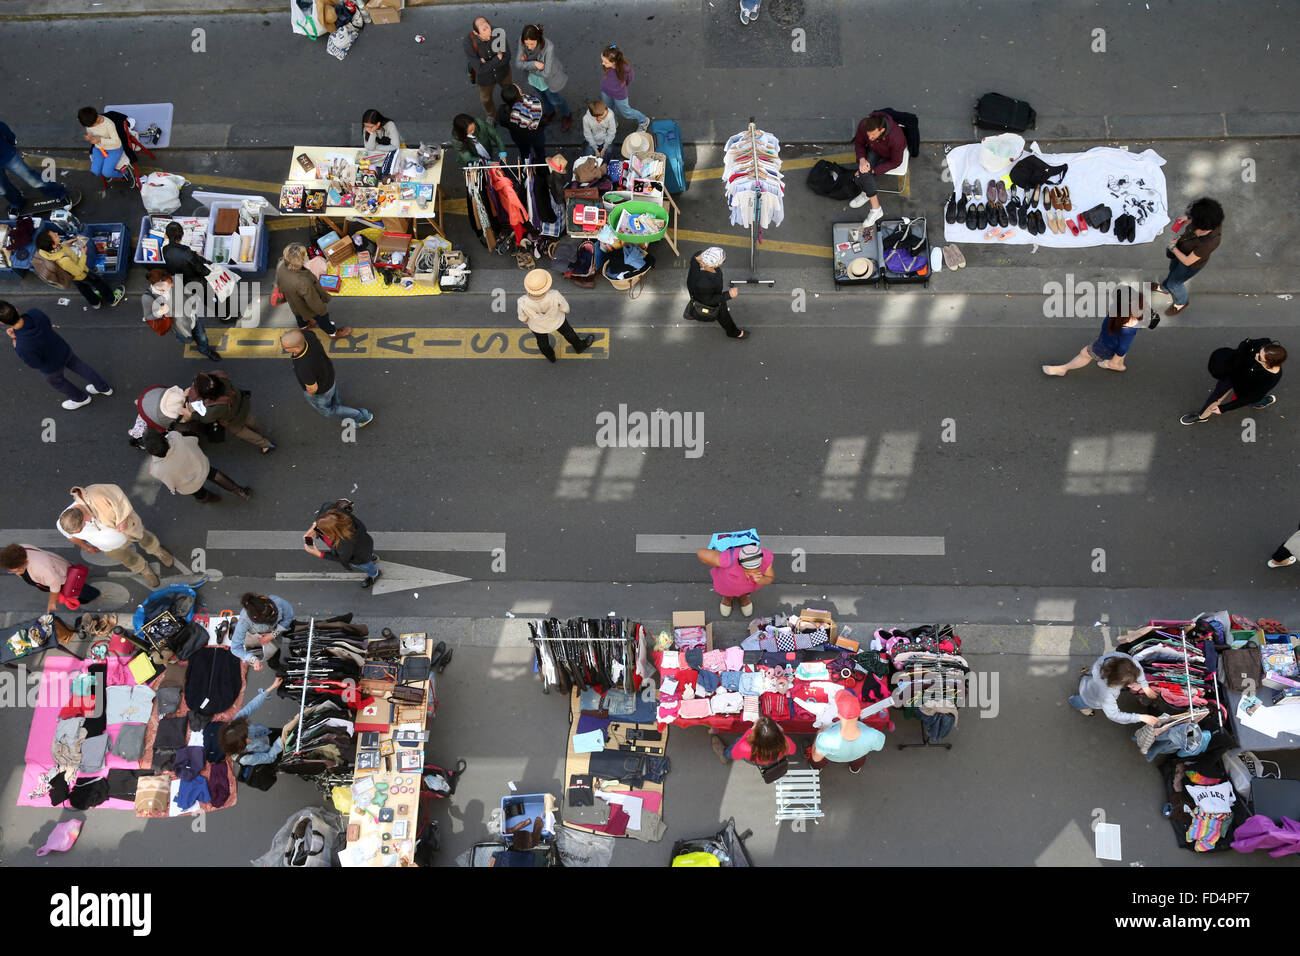 Second-hand market in Paris. - Stock Image